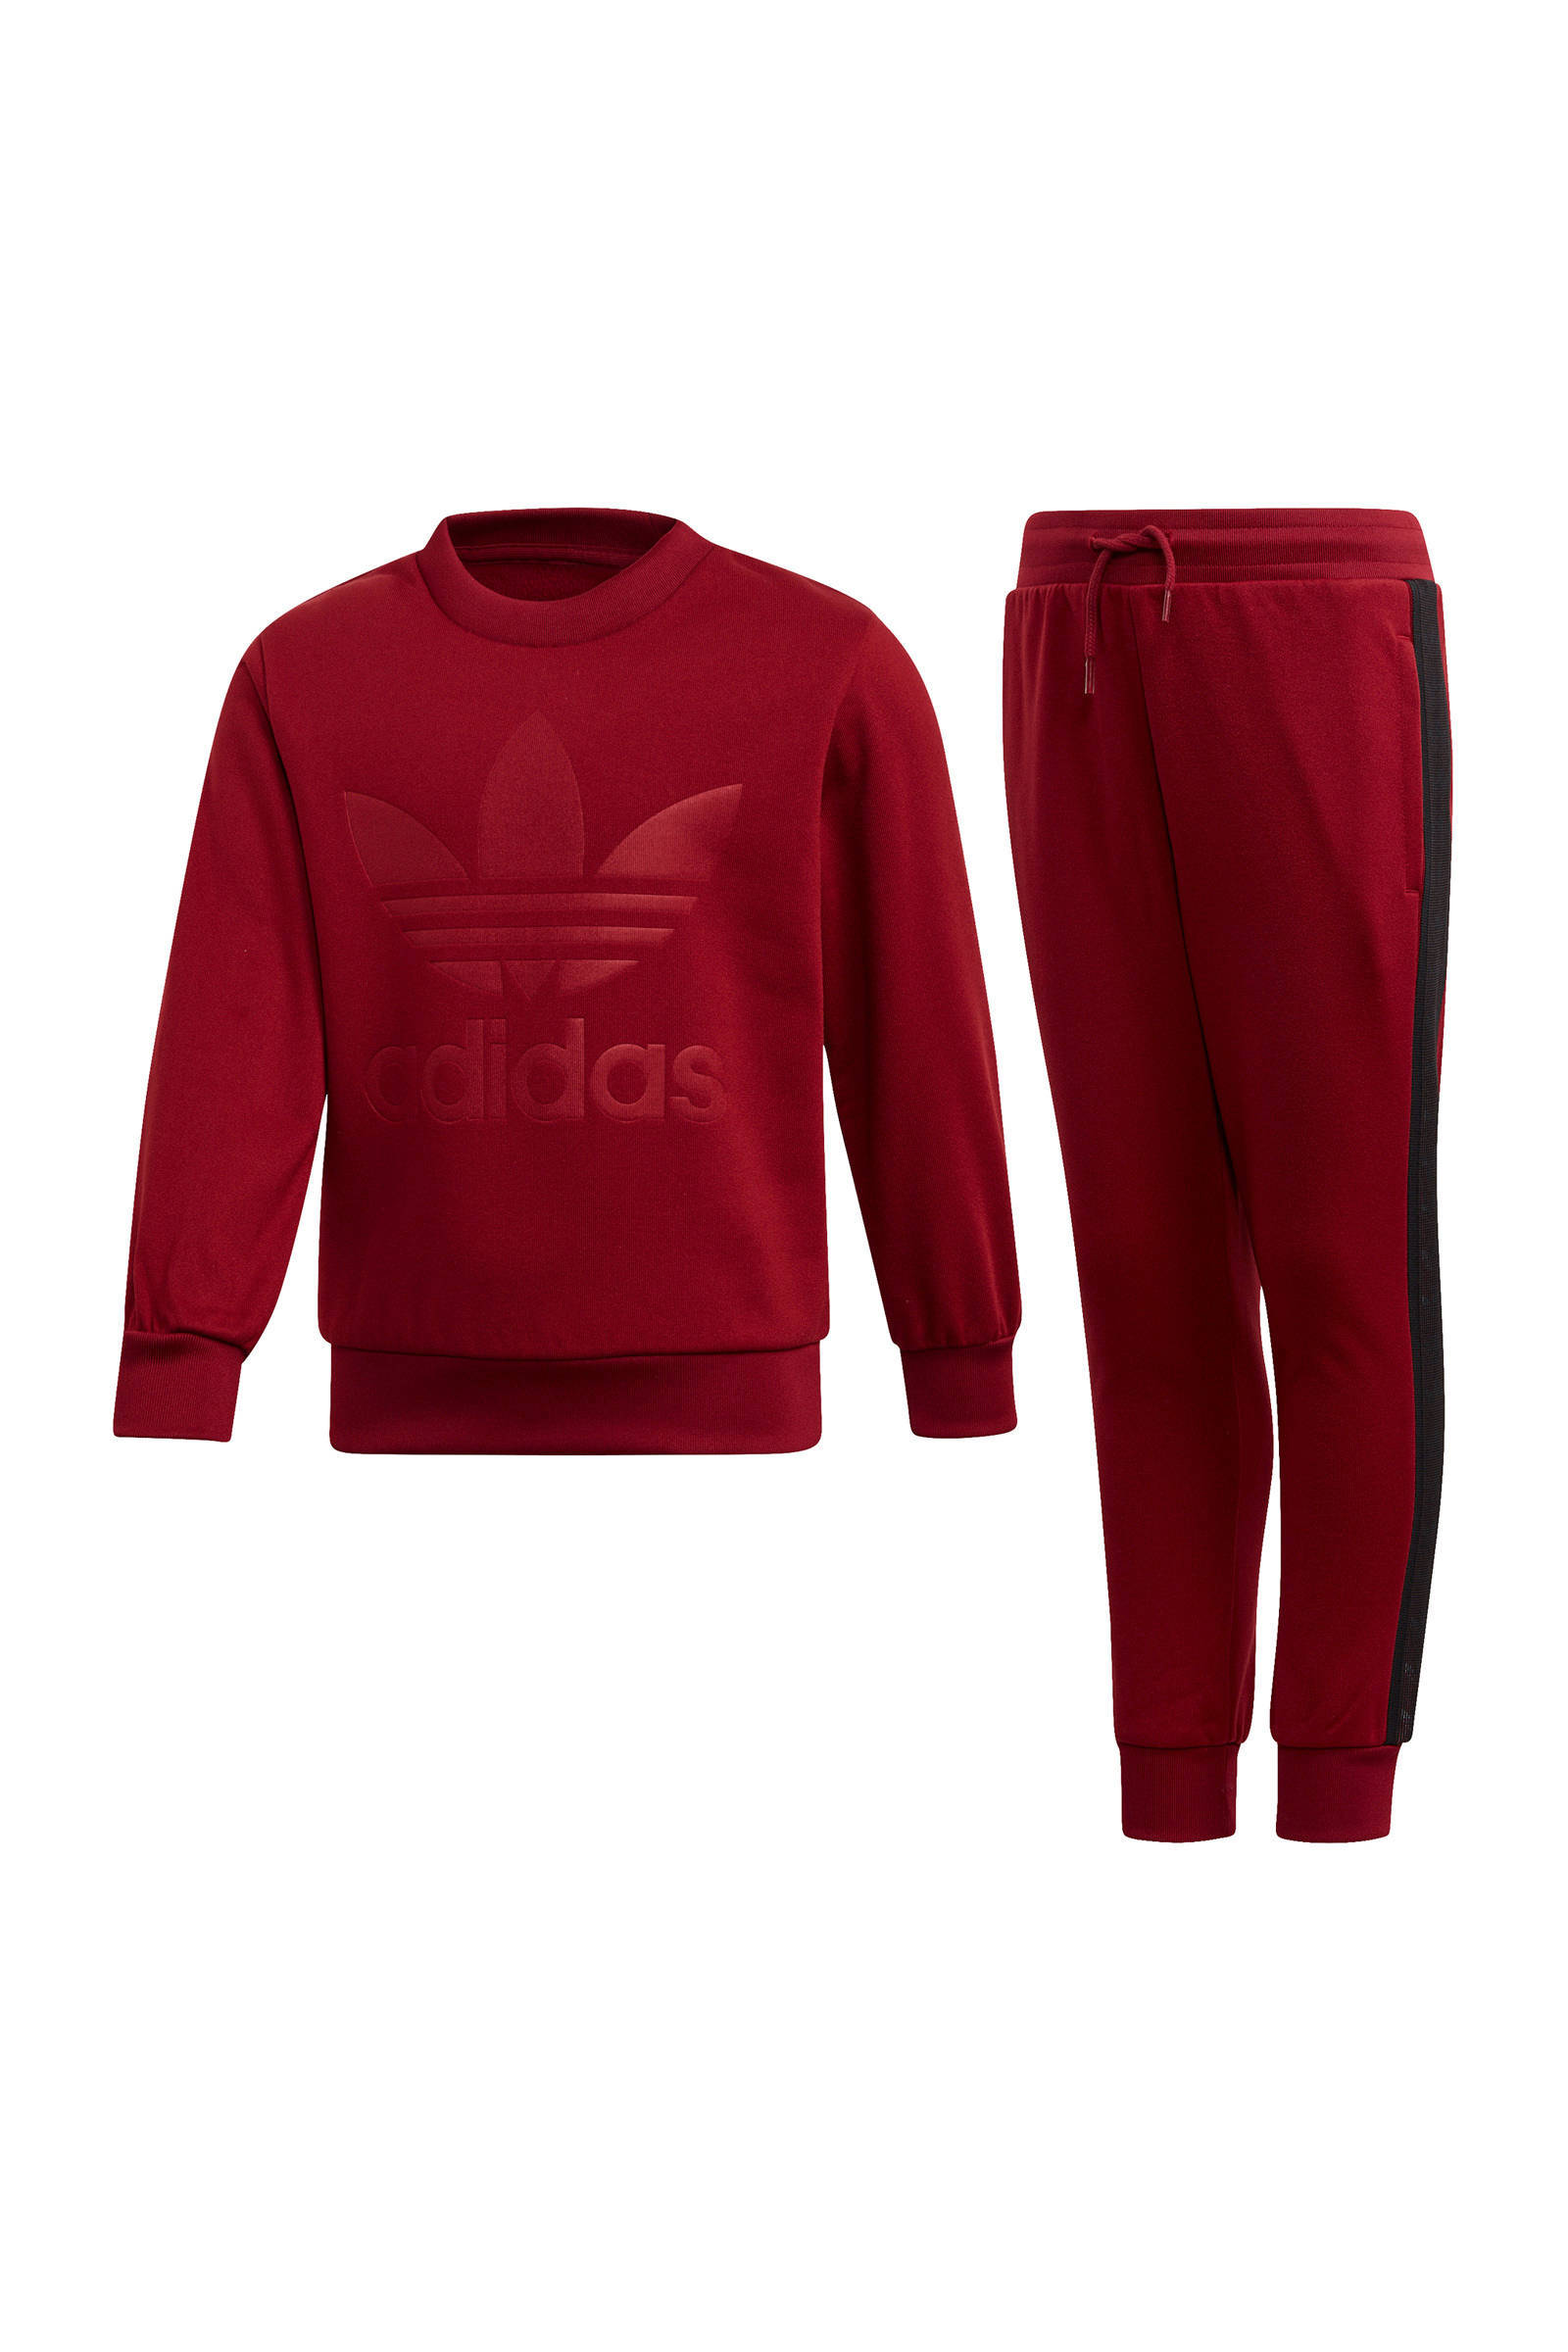 adidas Originals fleece joggingpak donkerrood | wehkamp